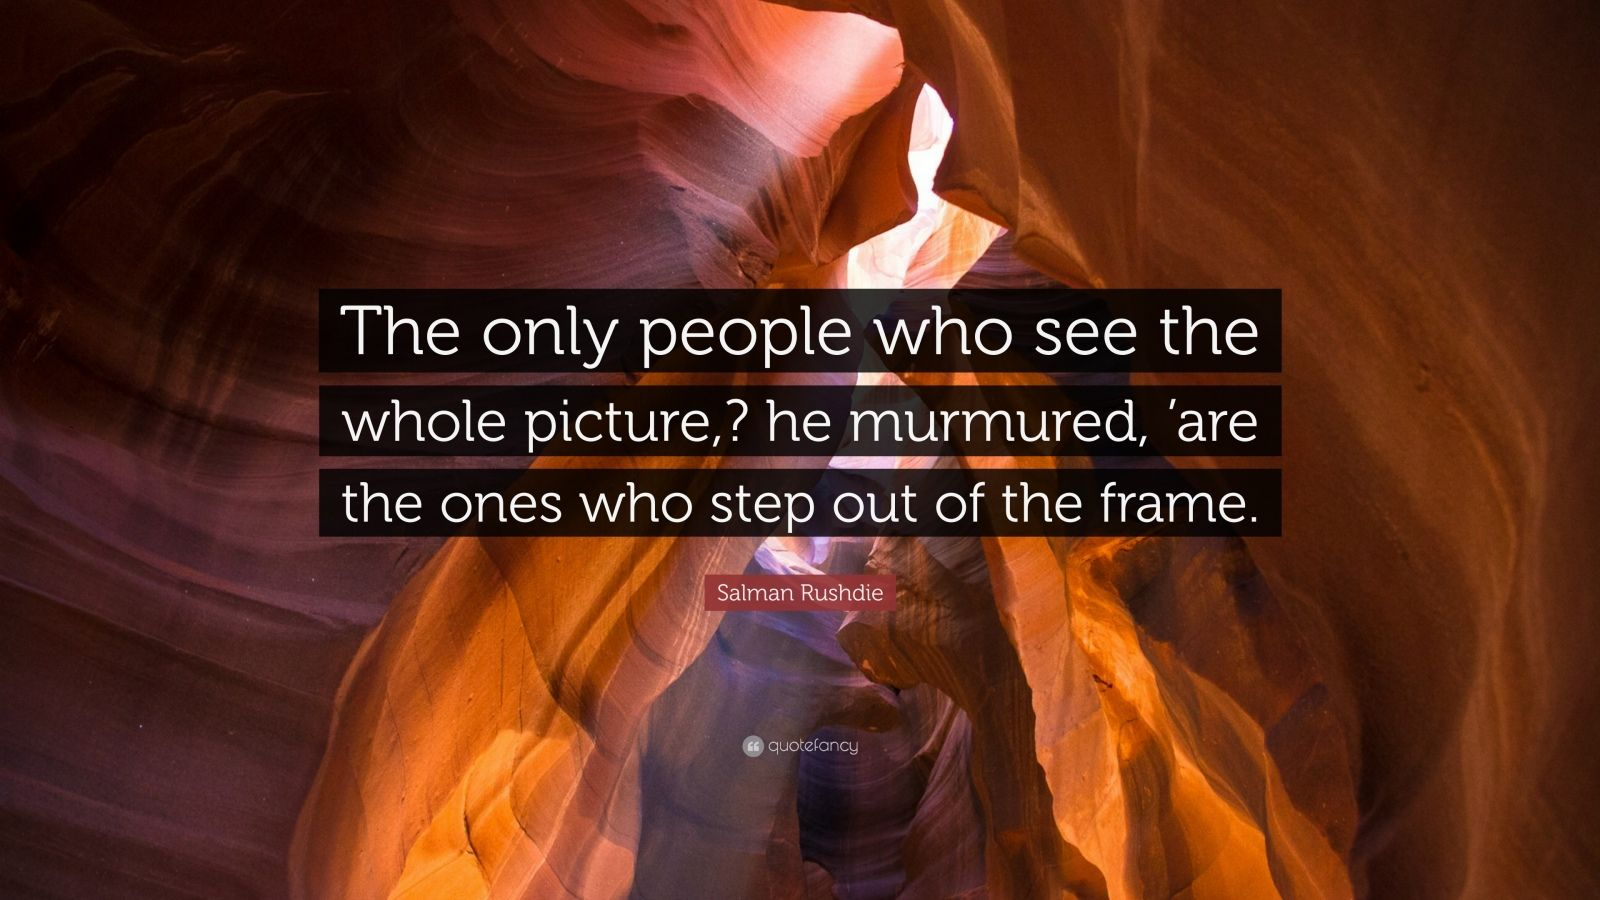 """Salman Rushdie Quote: """"The only people who see the whole picture,? he murmured, 'are the ones who step out of the frame."""""""